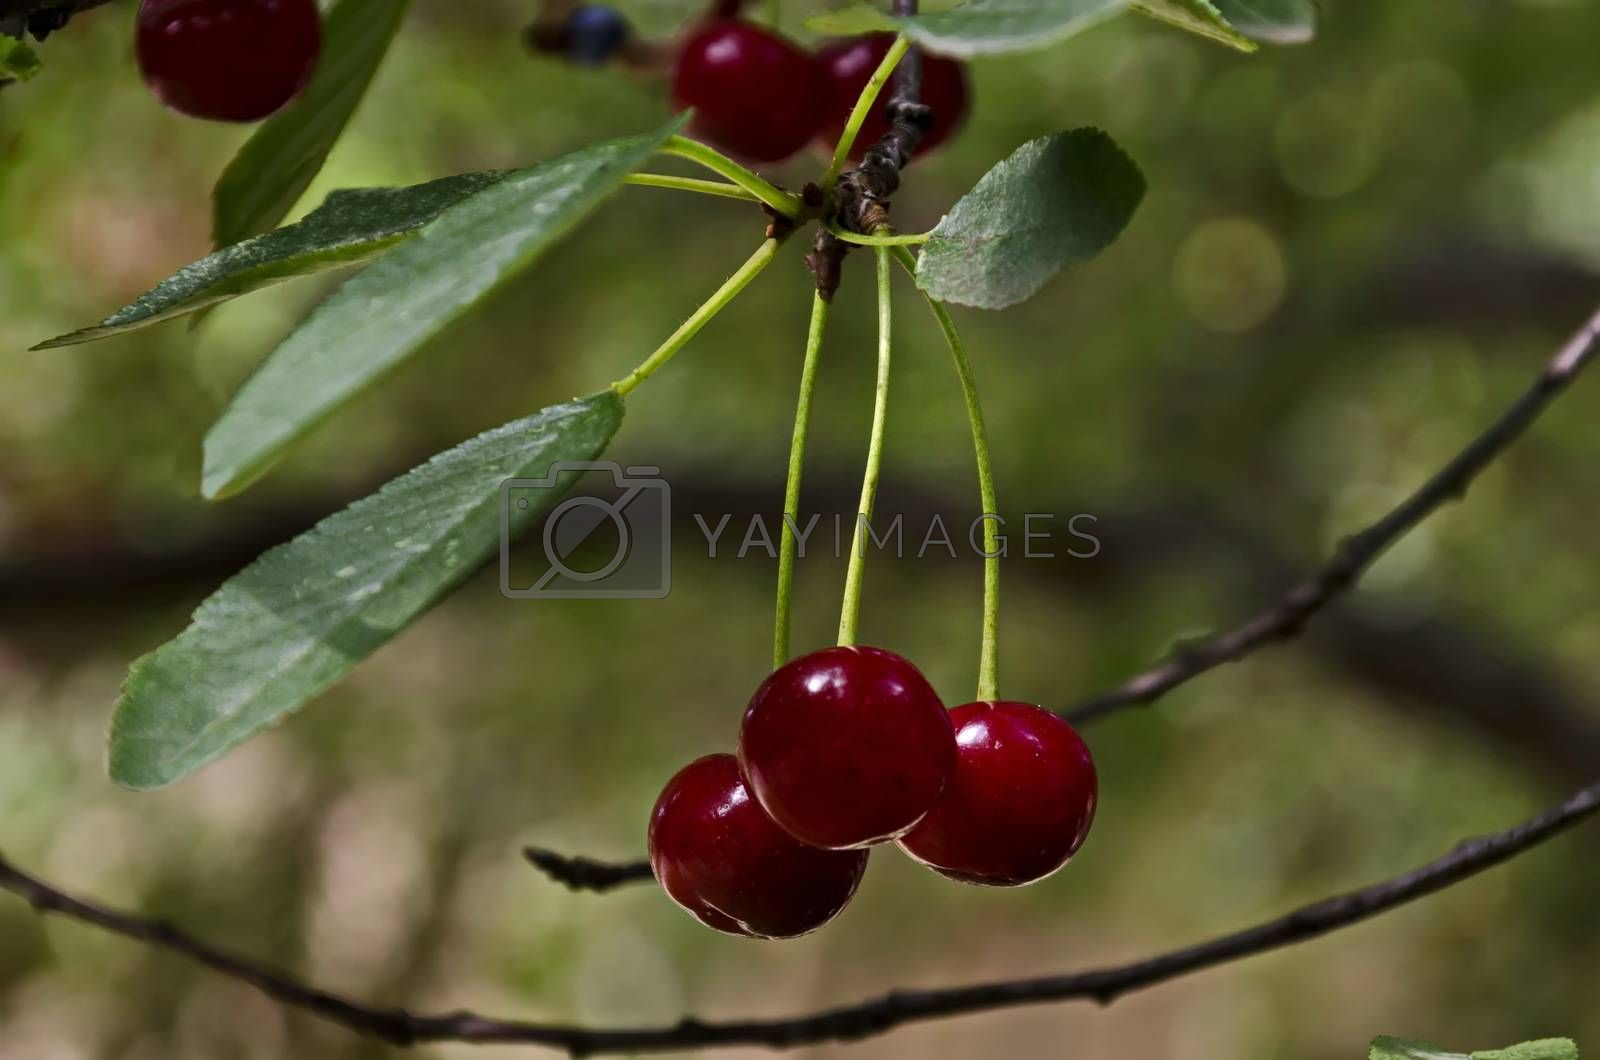 Cherry or sour cherry twig with sweet appetizing red fruits in the garden, Sofia, Bulgaria